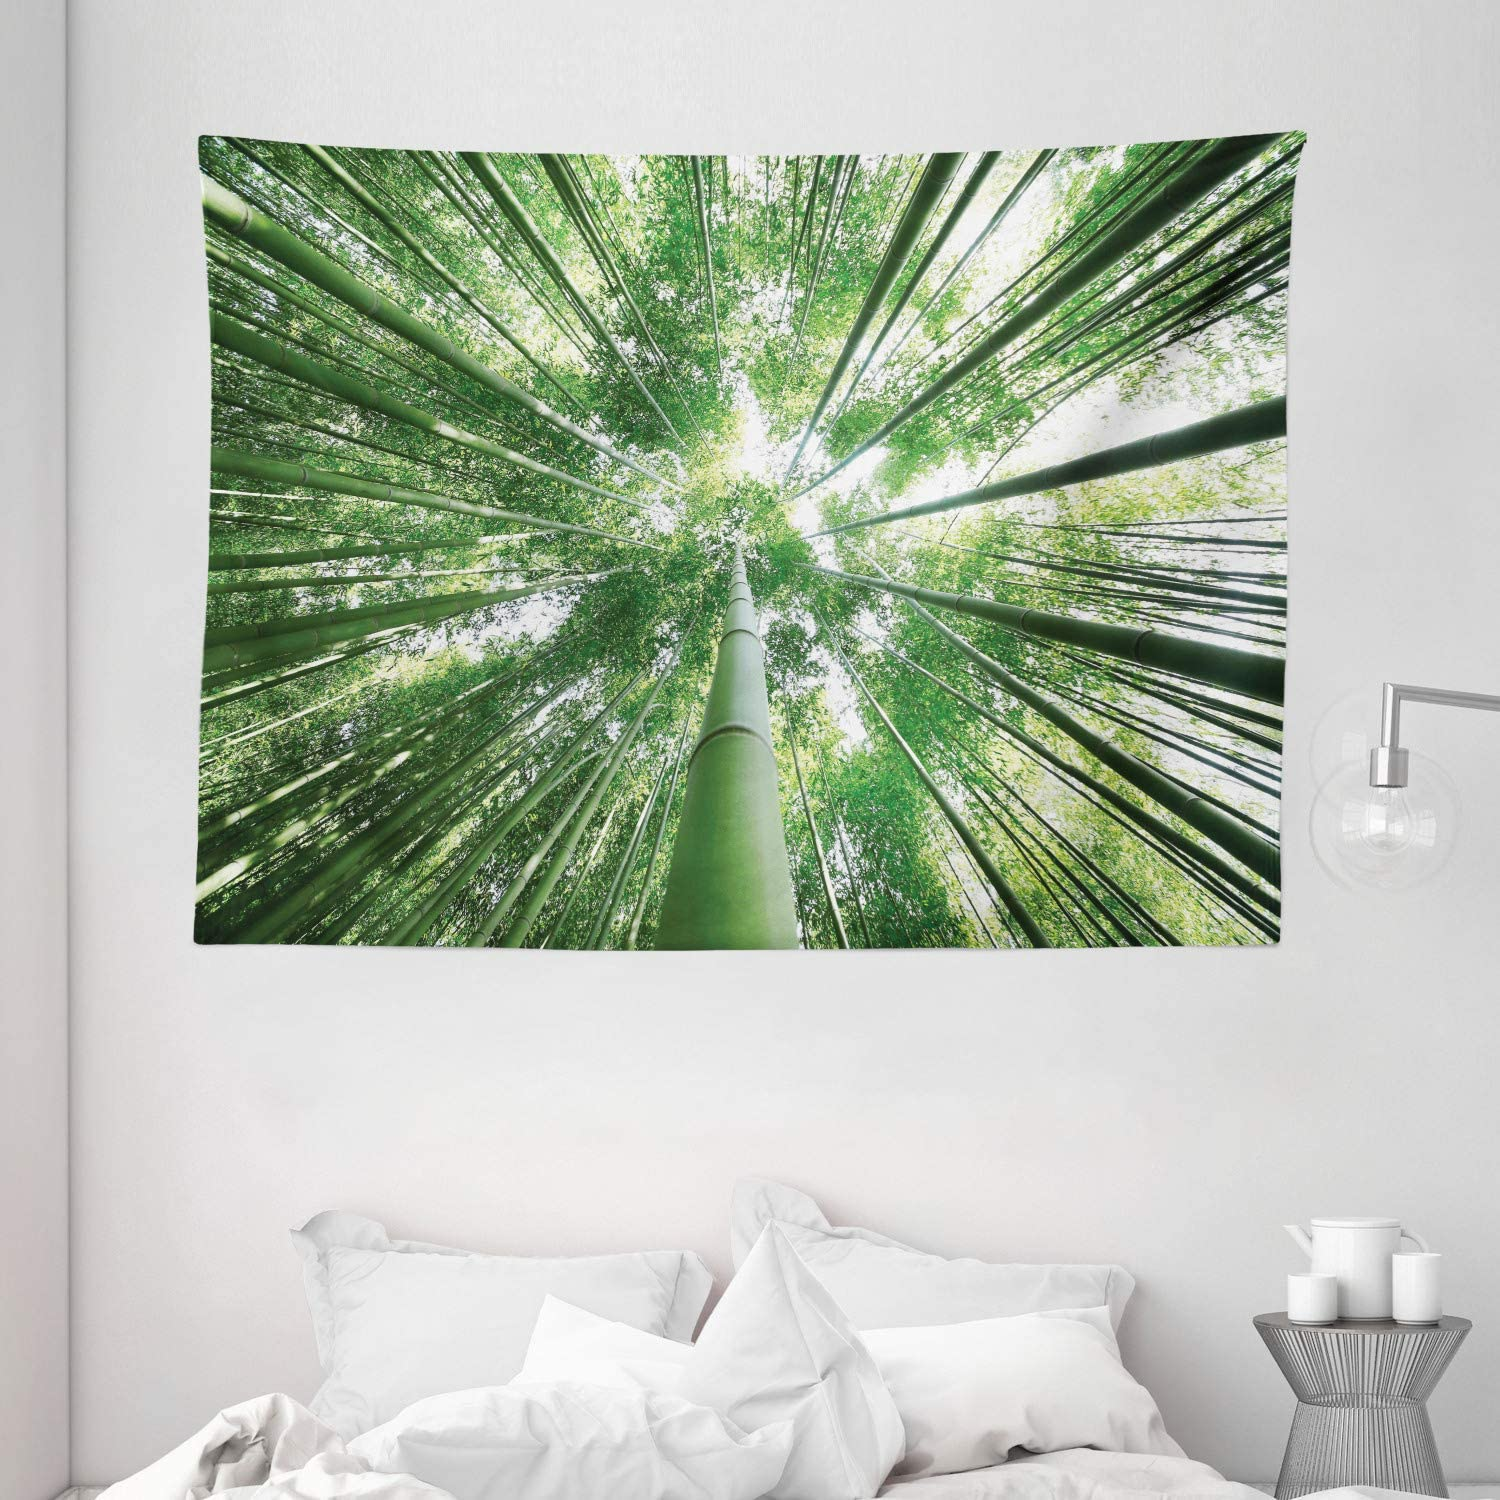 """Ambesonne Bamboo Tapestry, Tropical Rain Forest Tall Bamboo Trees in Grove Exotic Style Nature Theme Image, Wide Wall Hanging for Bedroom Living Room Dorm, 80"""" X 60"""", Green"""